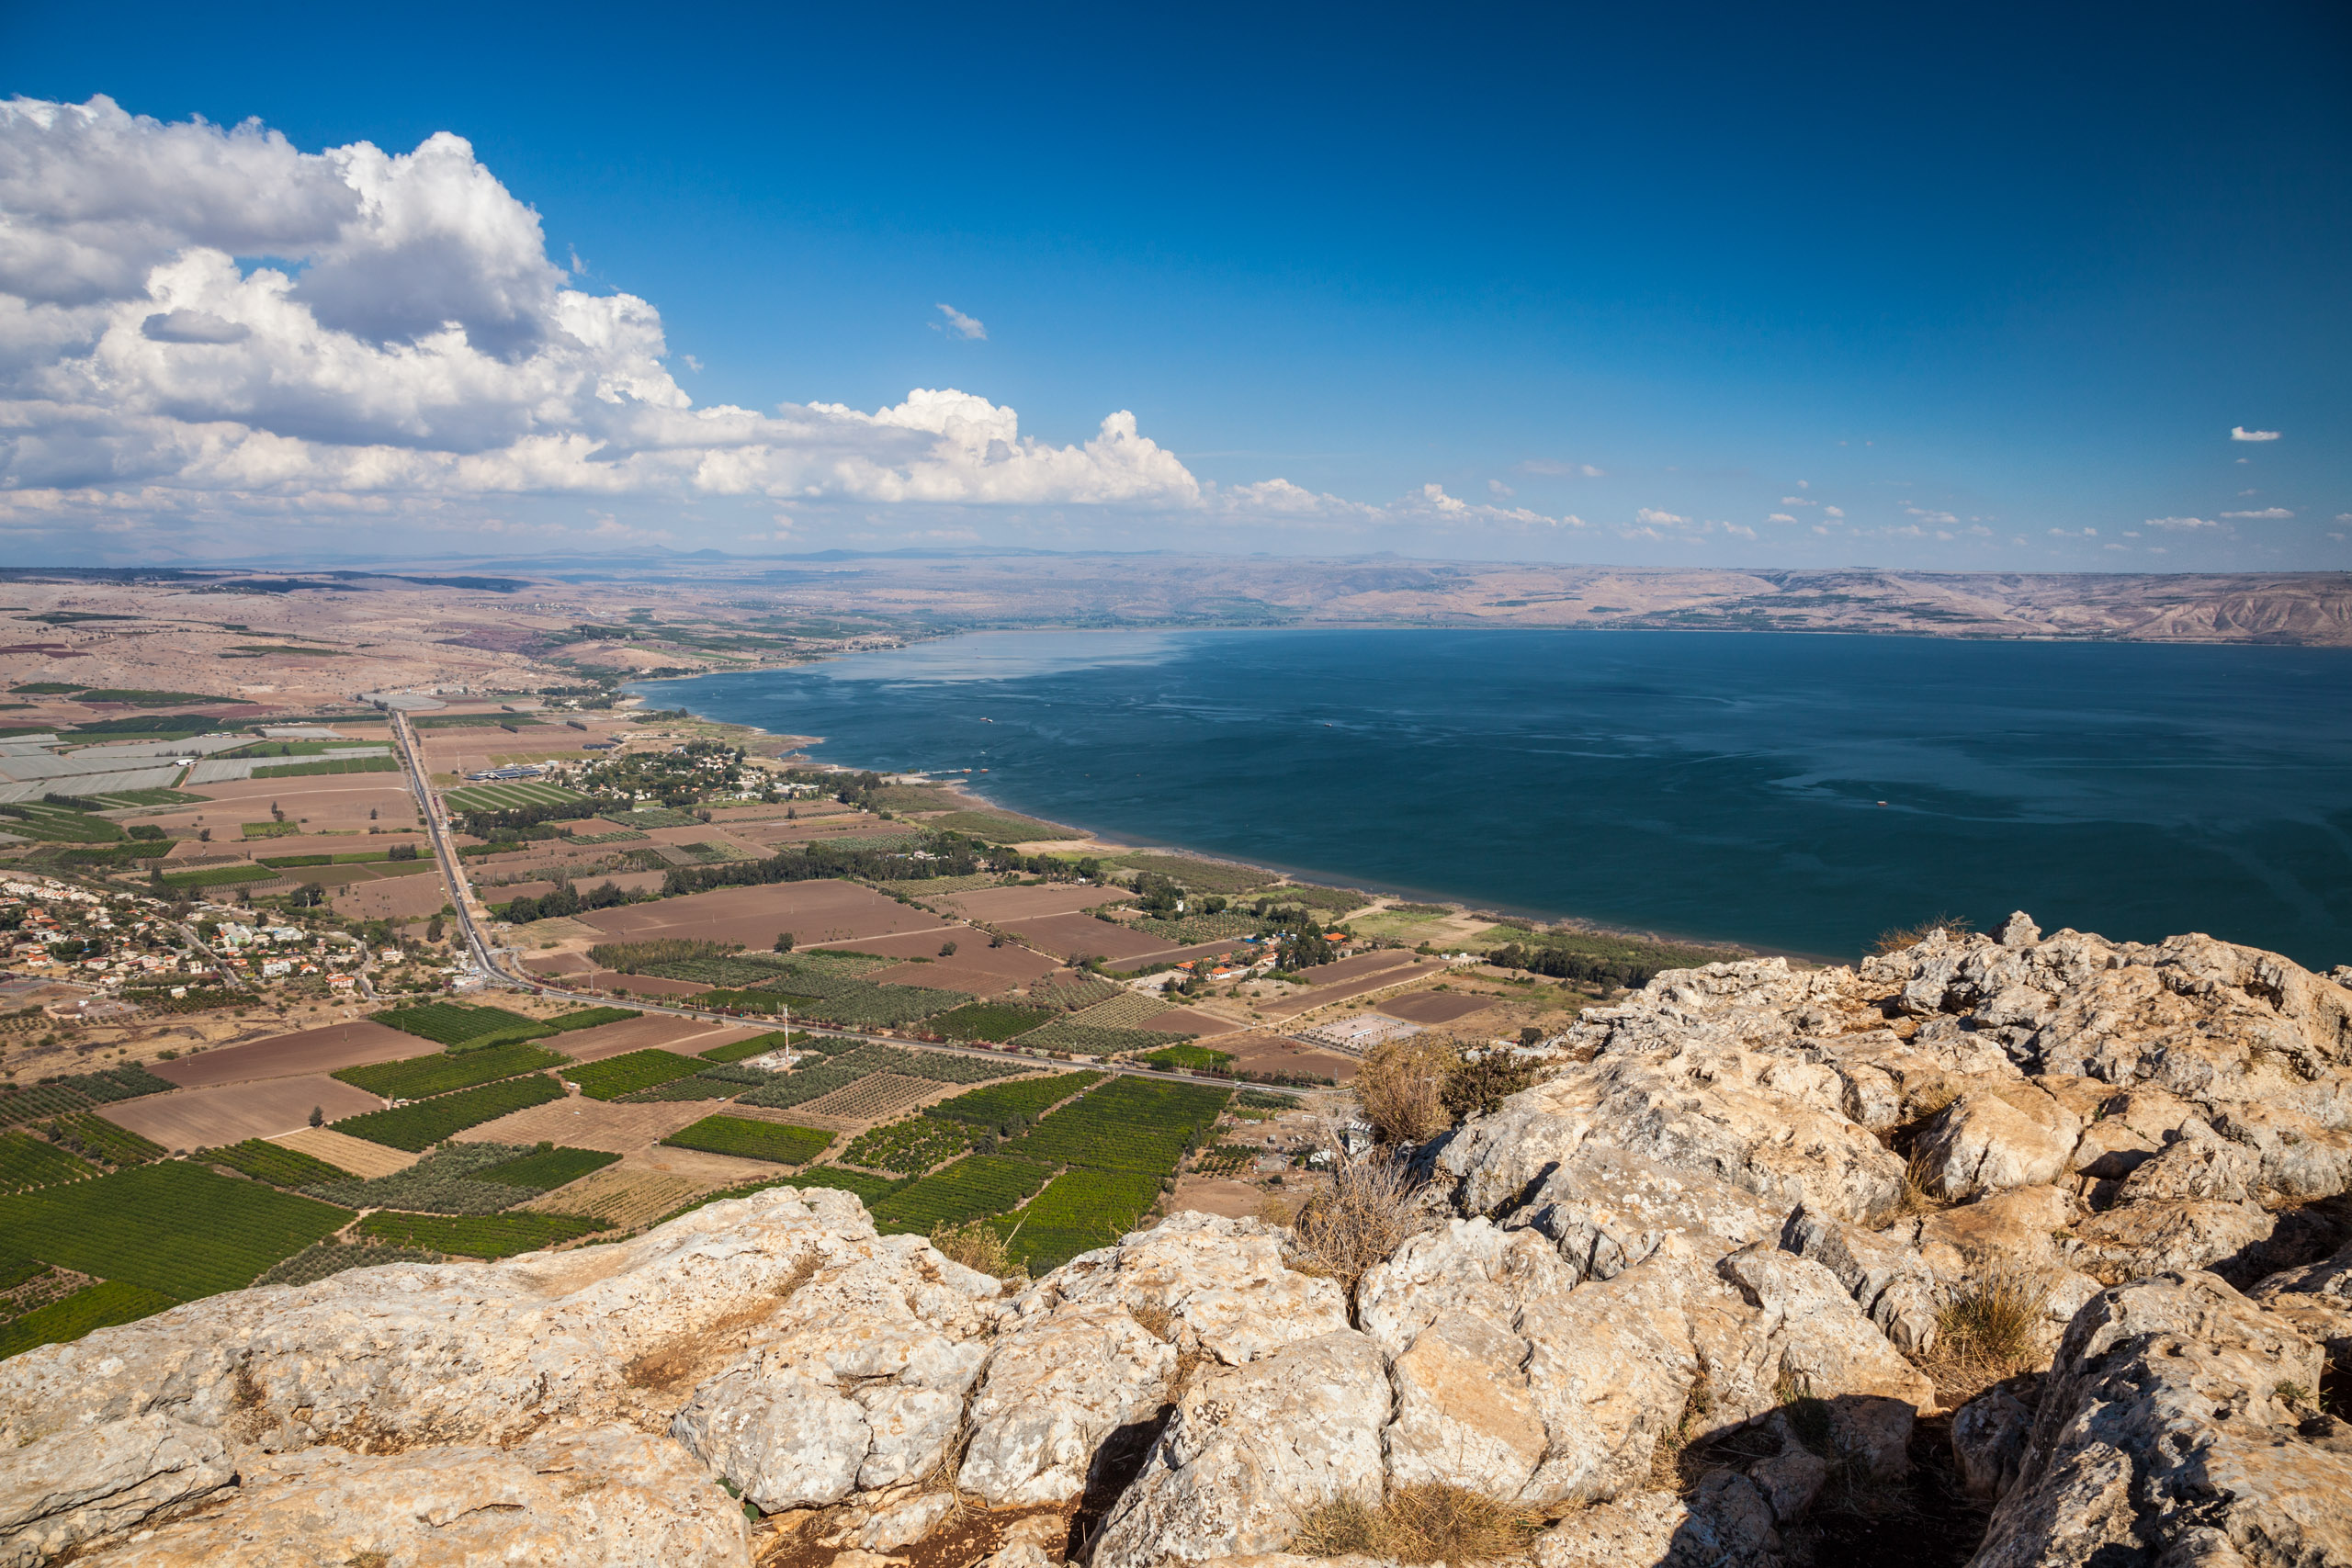 Top of Mount Arbel